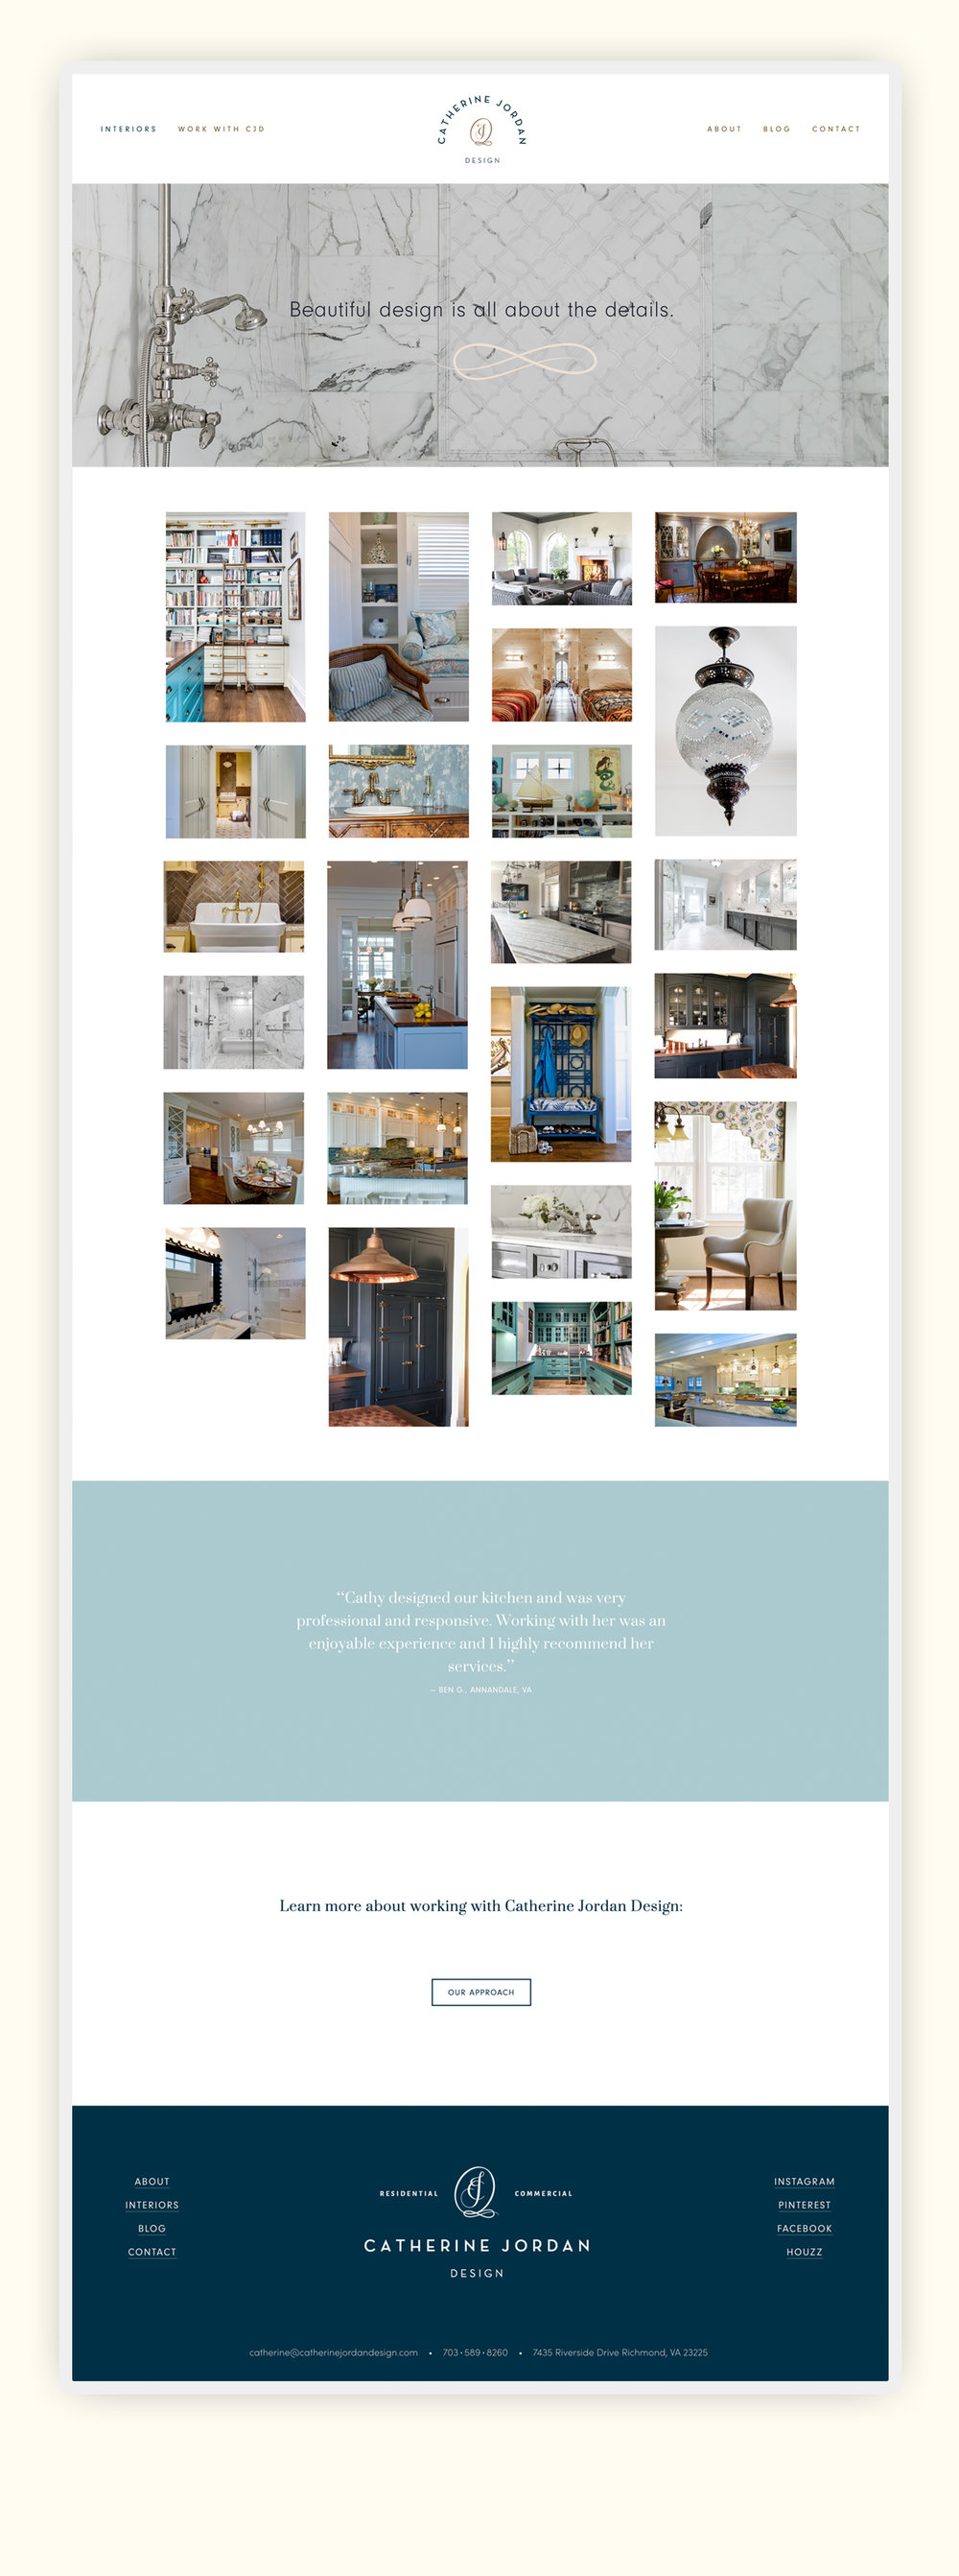 CJD_website-mockup-fullpage-interiors.jpg